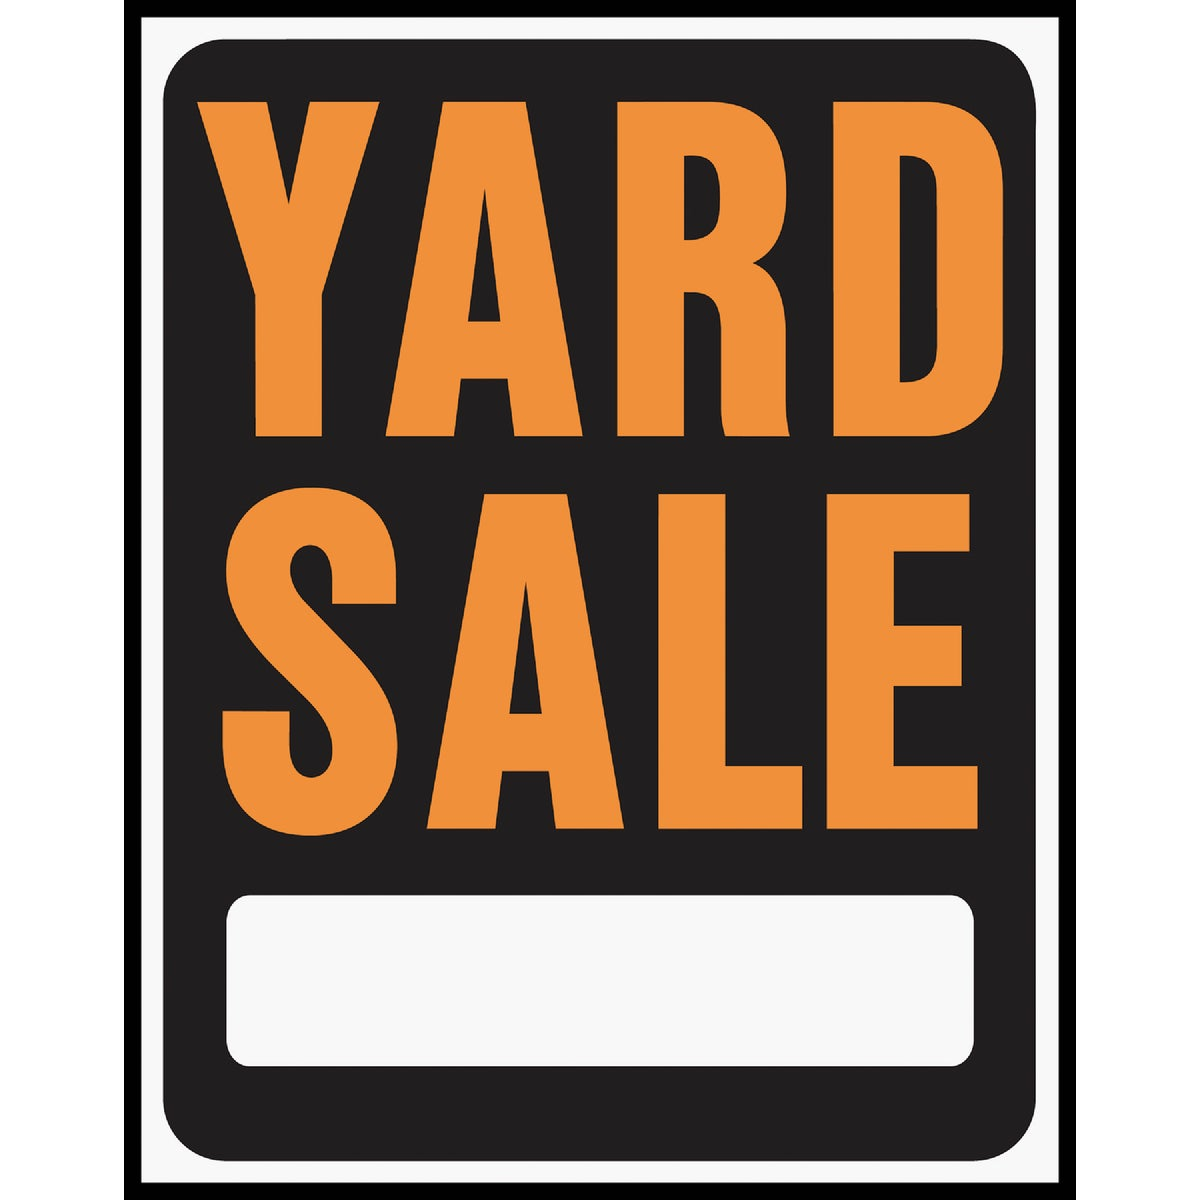 15X19 YARD SALE SIGN - SP-111 by Hy Ko Prods Co